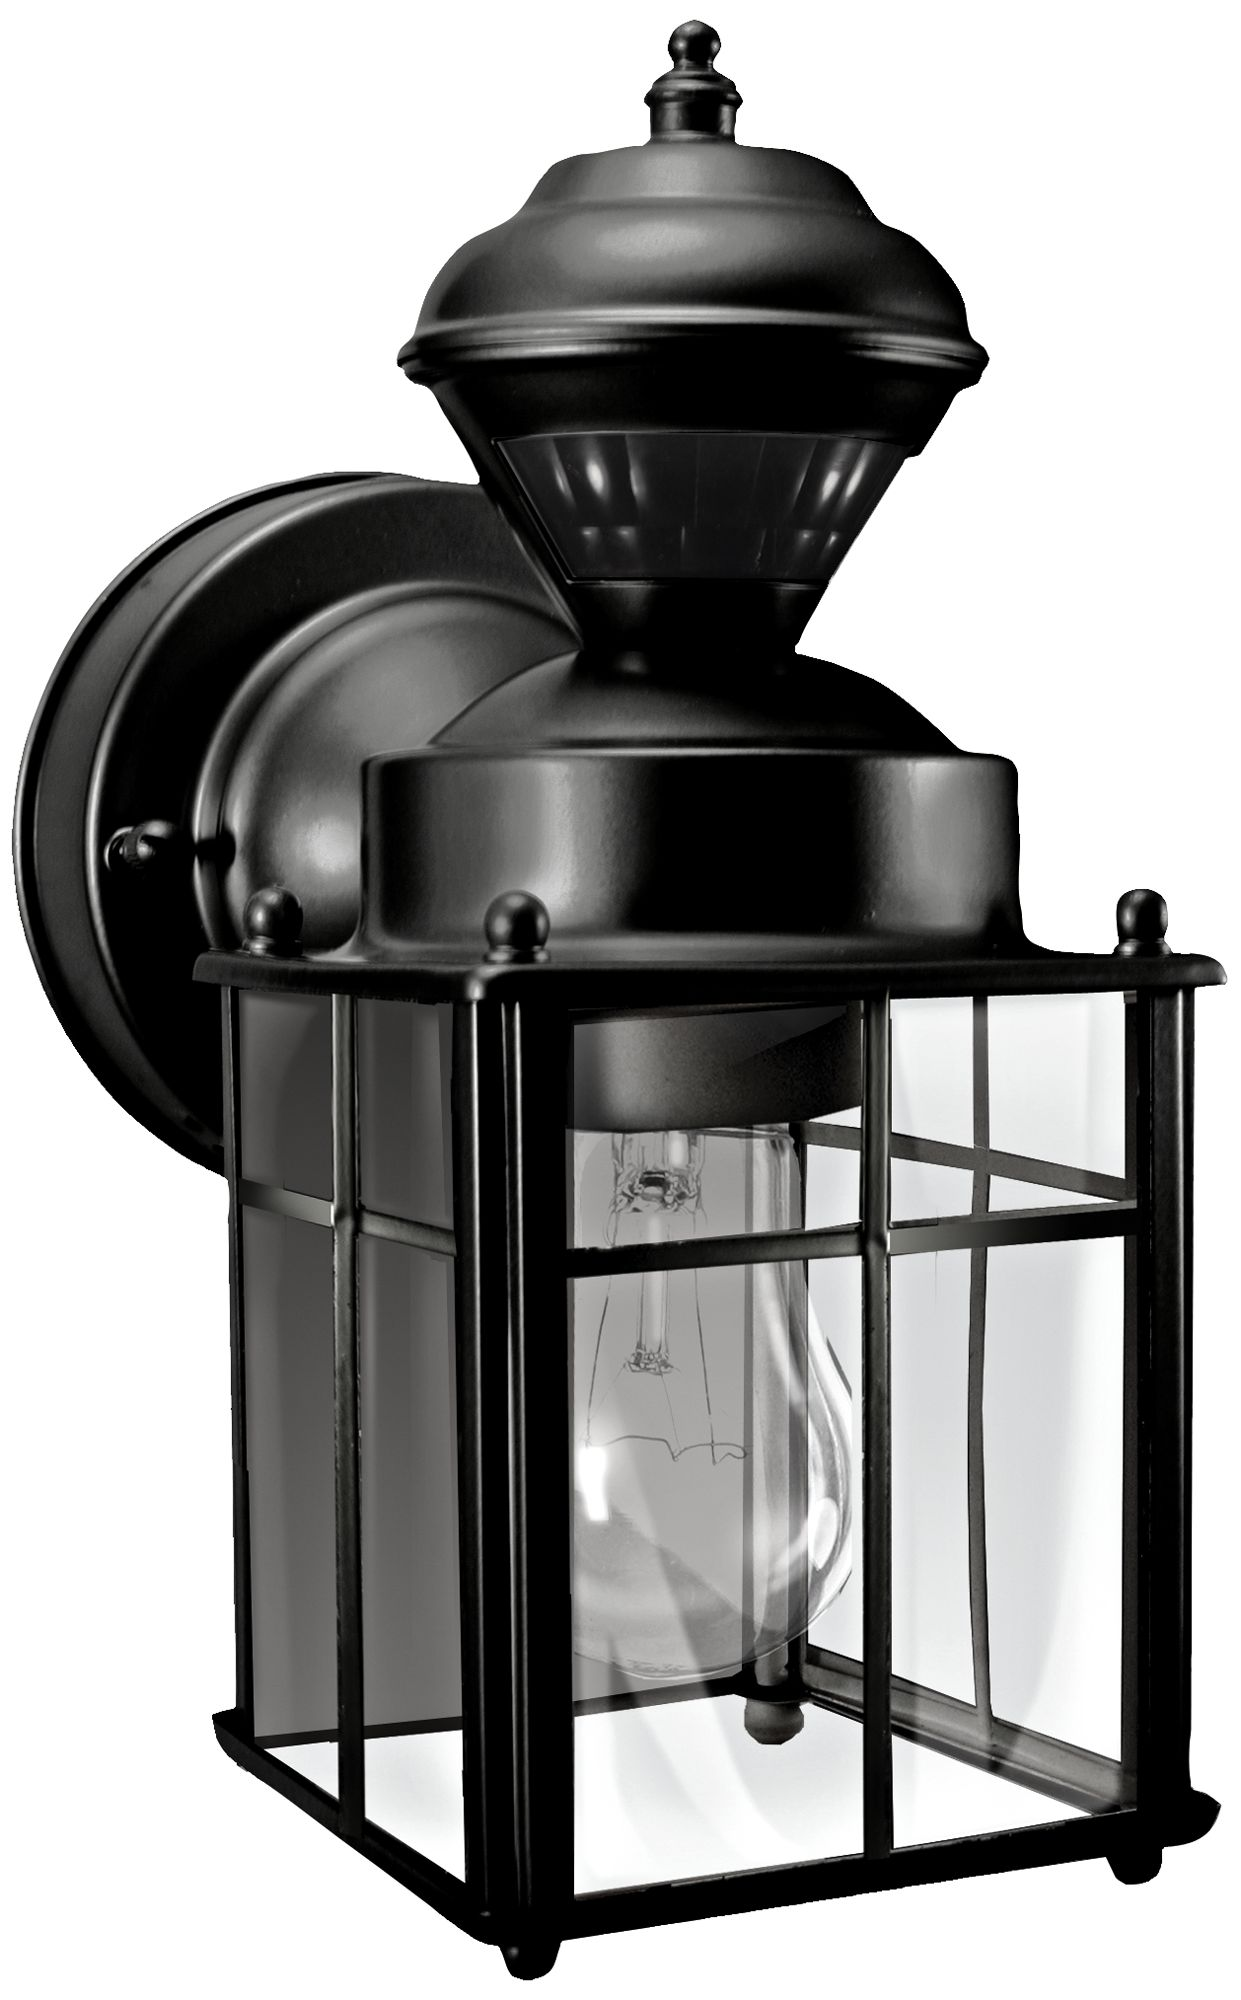 Best Bayside 9 1/2 motion sensor porch light